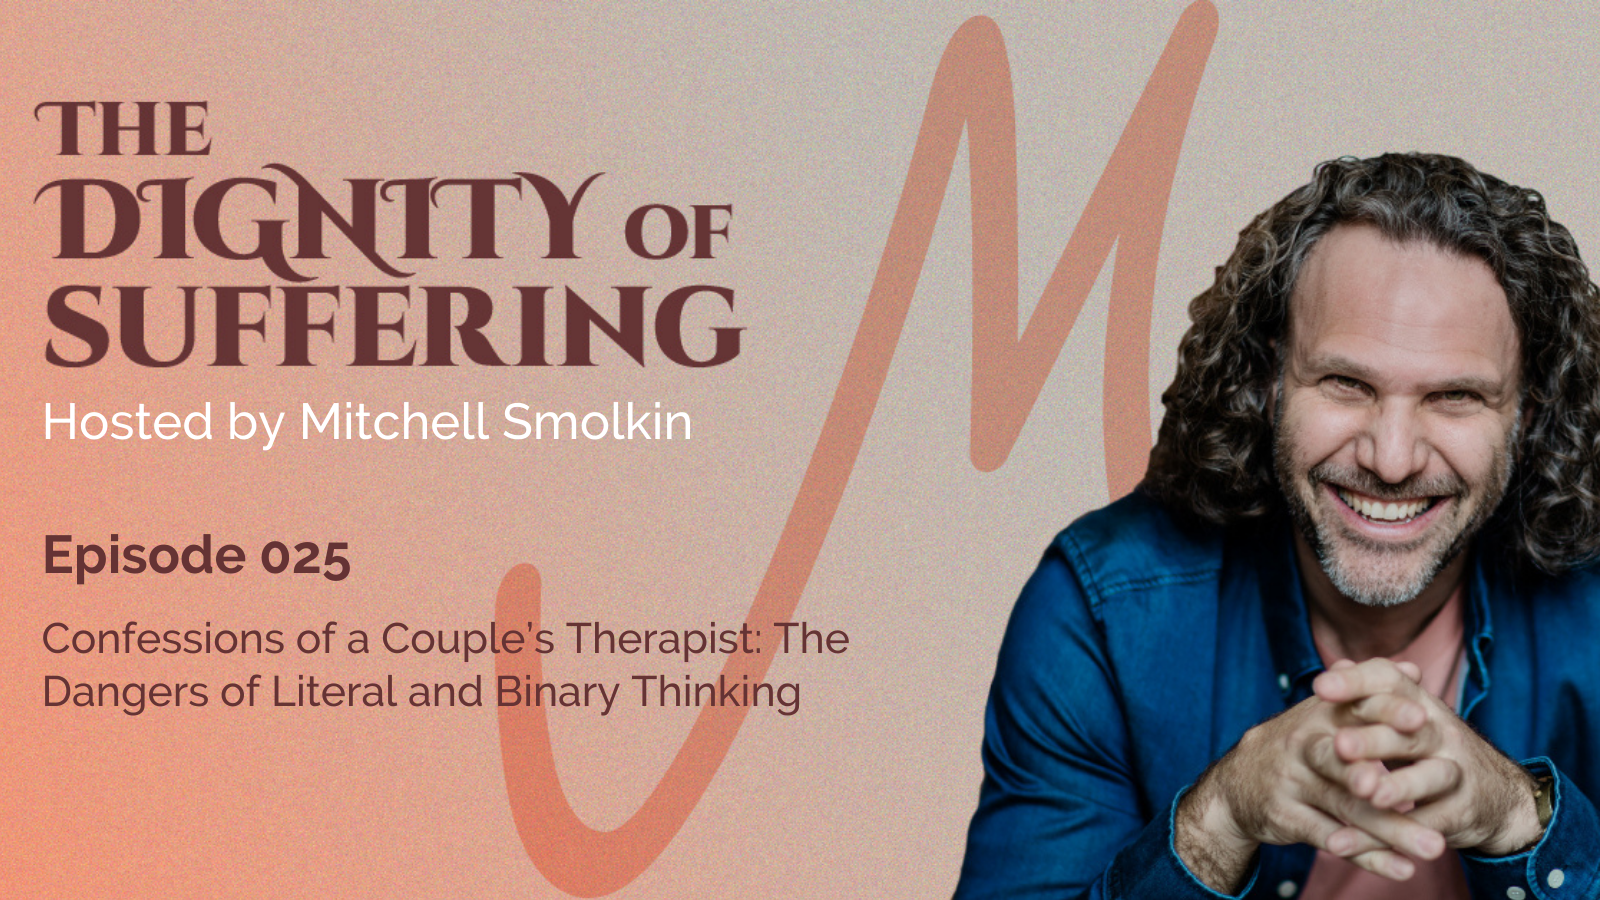 Episode 025: Confessions of a Couple's Therapist: The Dangers of Literal and Binary Thinking